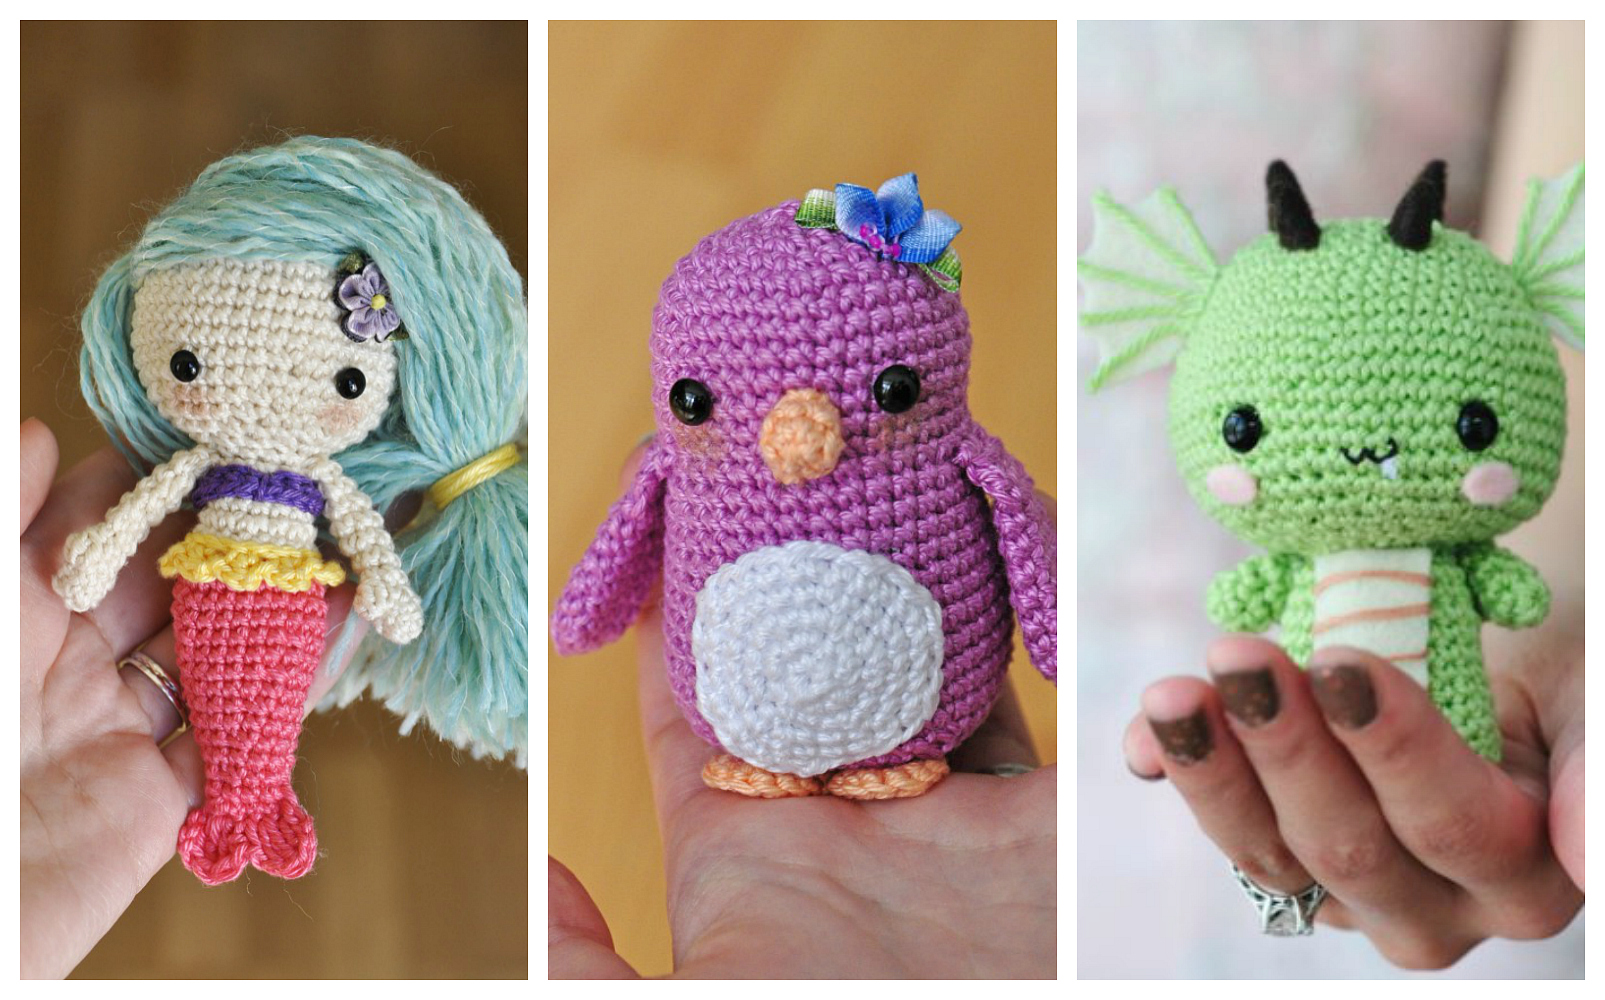 Forget Karma, These Tiny Crochet Chameleons Will Save Us All … Now ... | 1000x1605